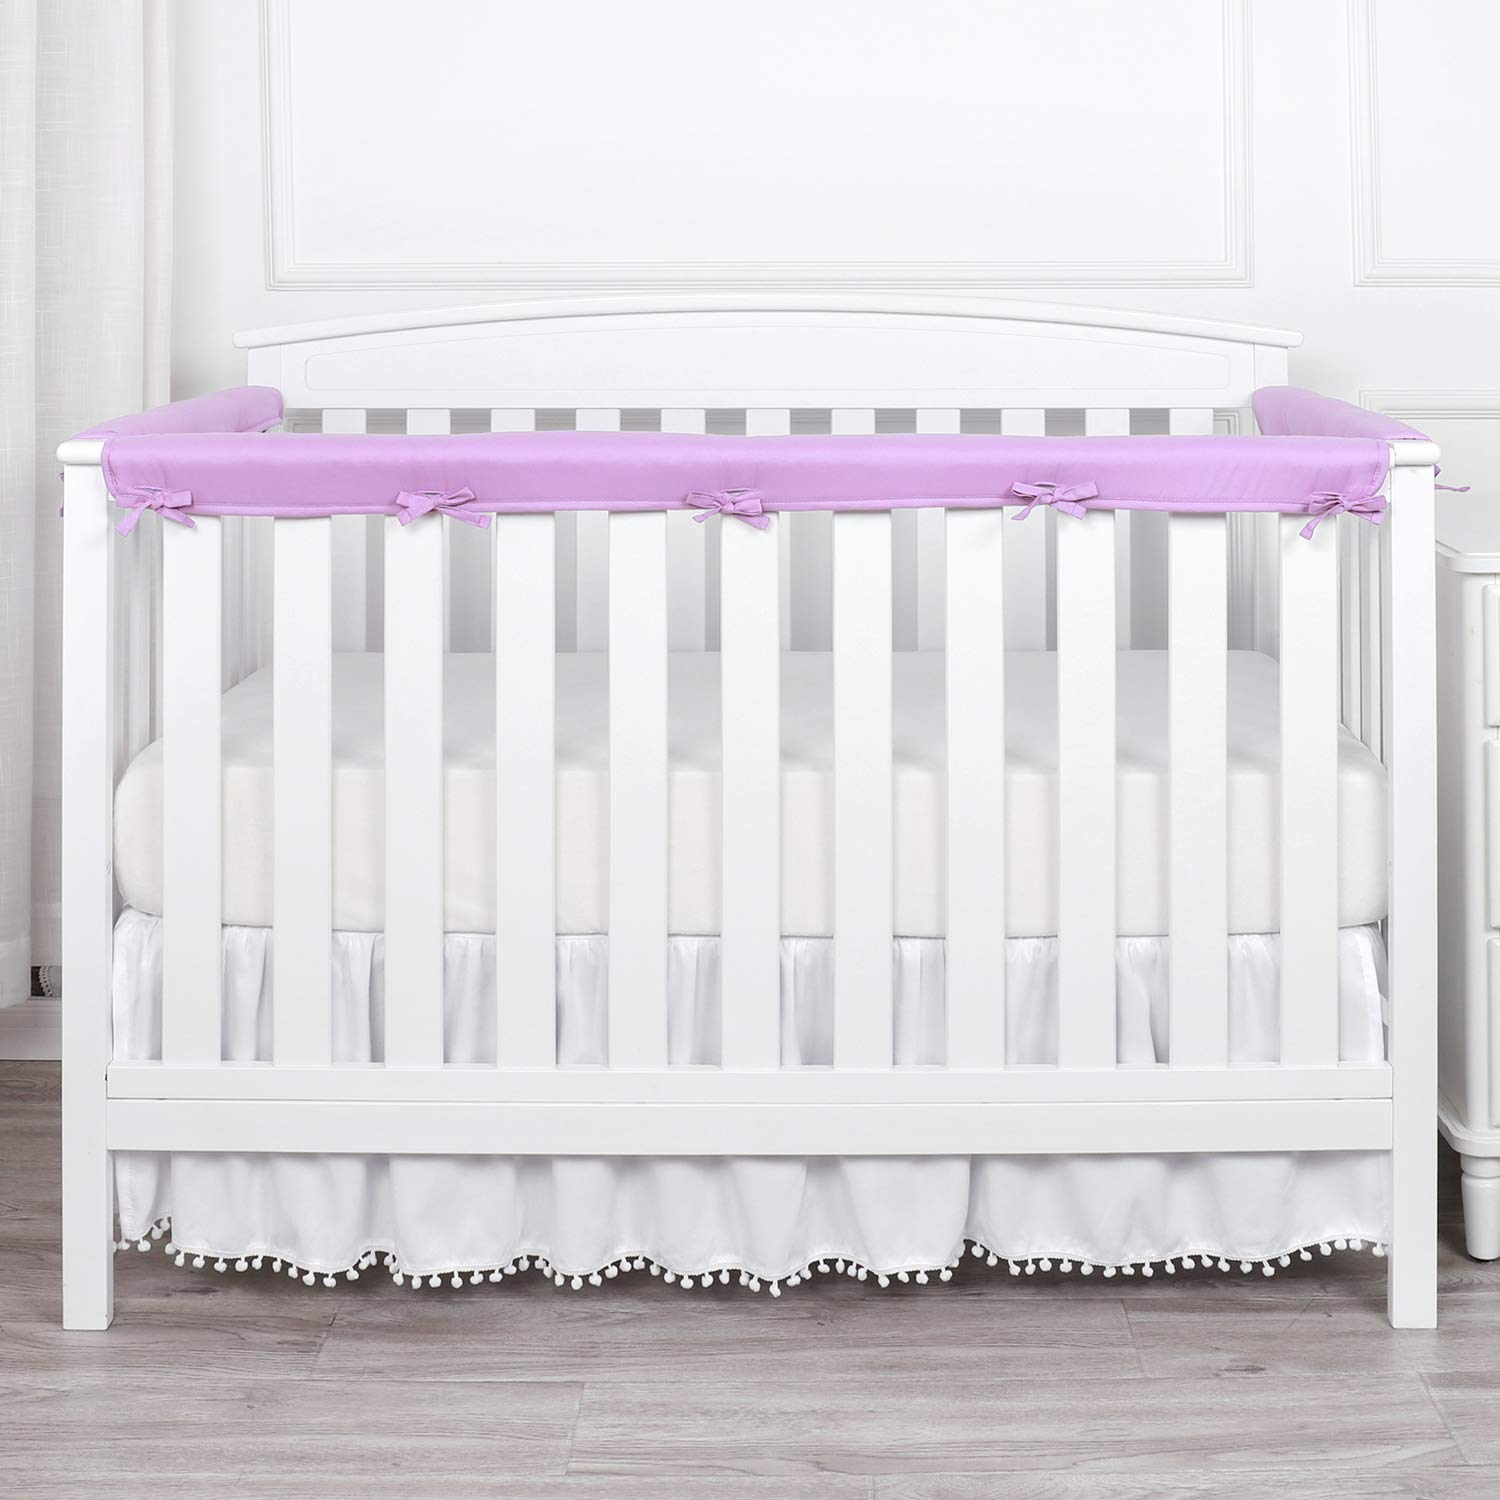 TILLYOU 3-Piece Padded Baby Crib Rail Cover Protector Set from Chewing, Safe Teething Guard Wrap for Standard Cribs, 100% Silky Soft Microfiber Polyester, Fits Side and Front Rails, Lavender